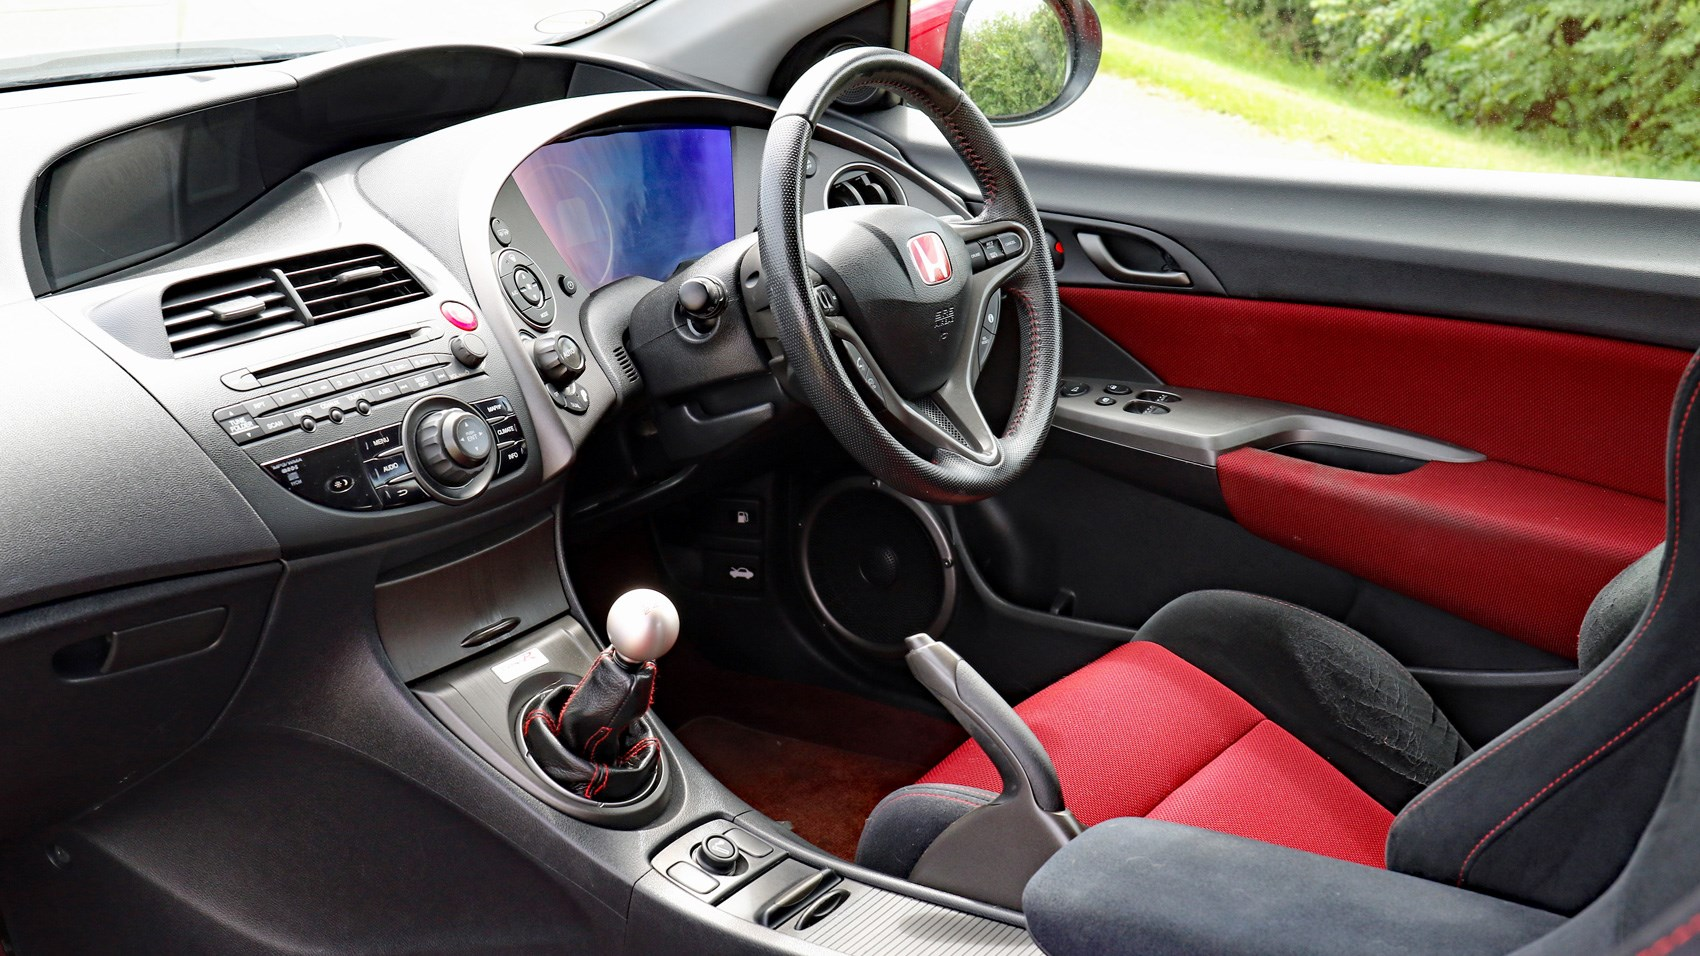 Inside The 2007 Honda Civic Type R ...